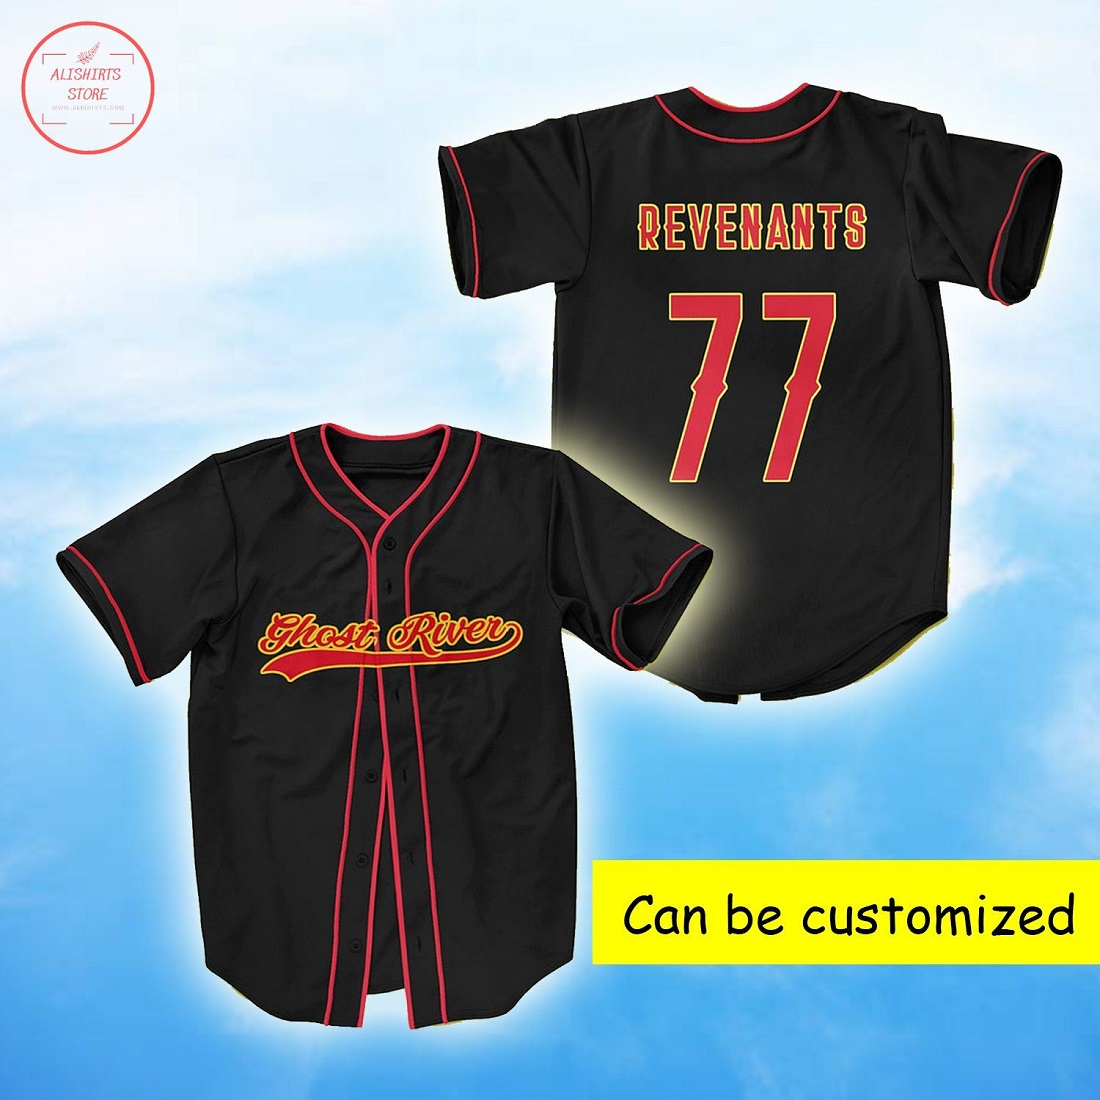 Ghost River Personalized Baseball Jersey